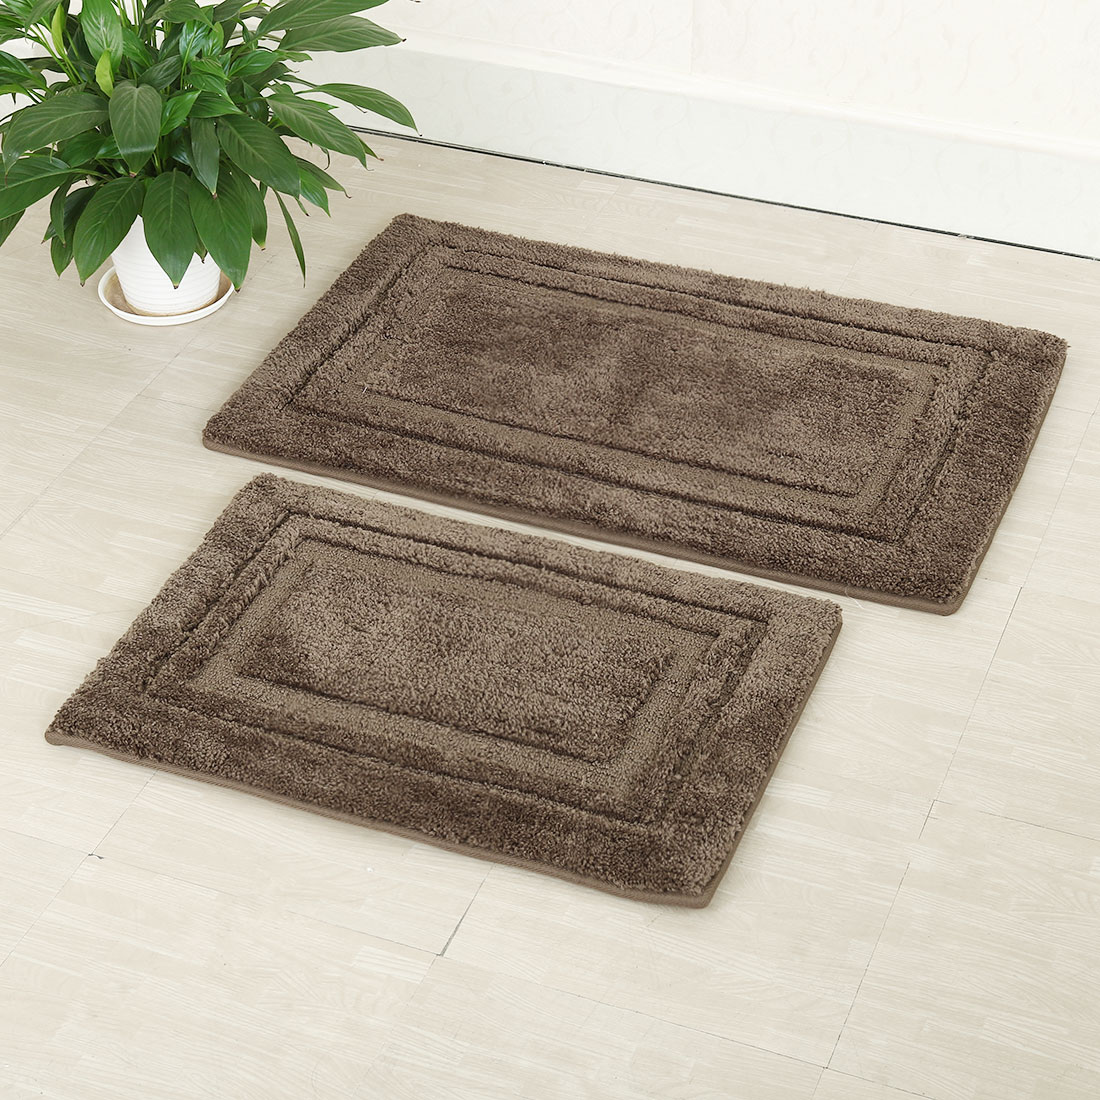 Click here to buy 2-Piece Non-slip Bath Rug Set Bath Mat Bathroom Rugs.